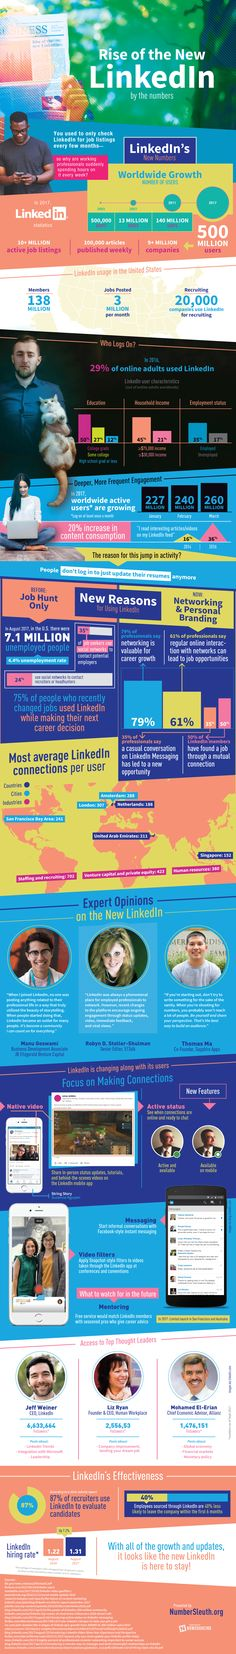 35 percent of small businesses worry about hiring skilled talent rise of the new linkedin by the numbers infographic fandeluxe Choice Image